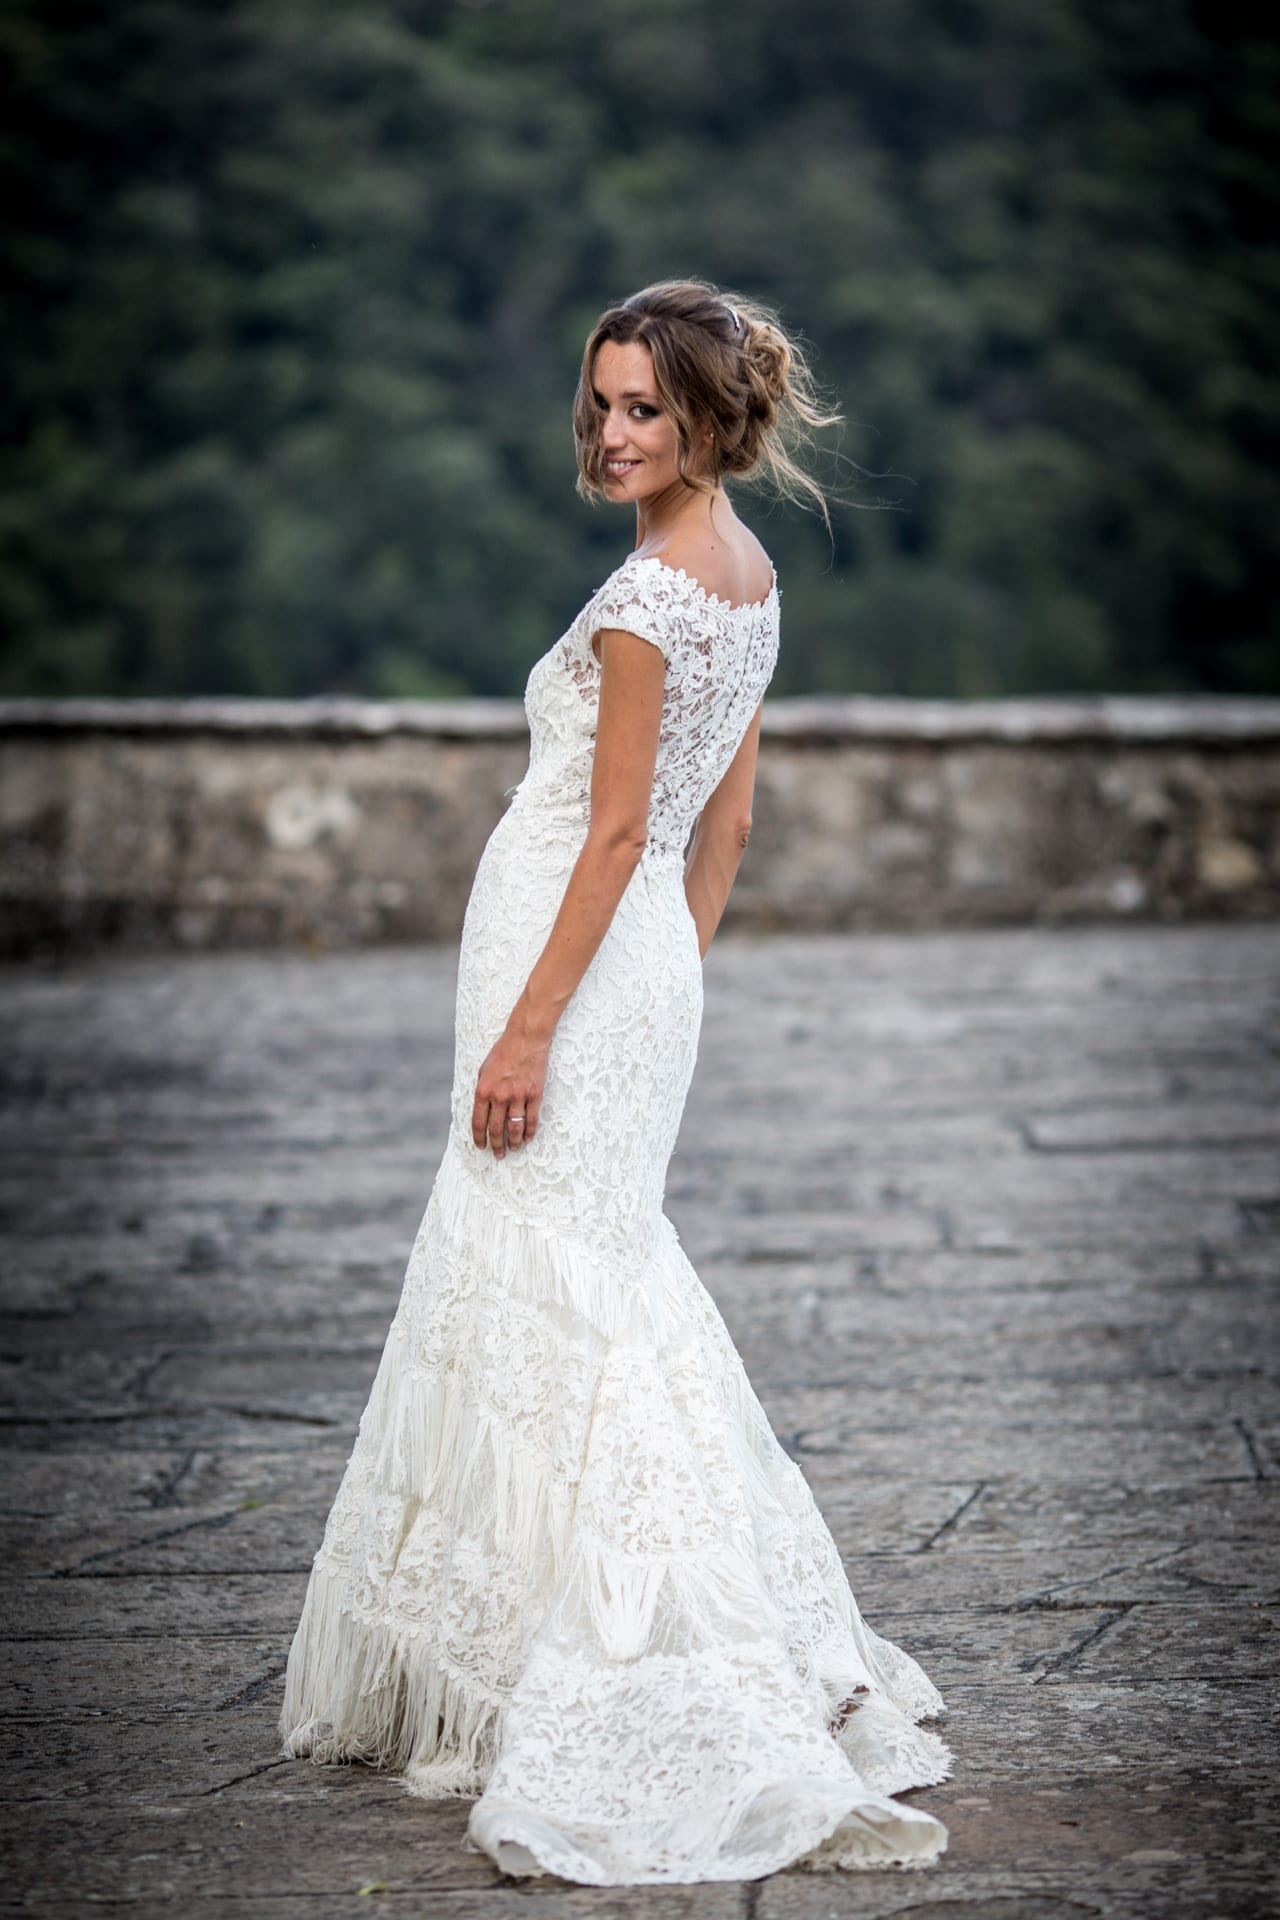 https://s3-eu-central-1.amazonaws.com/righiphotography-com/wp-content/uploads/2020/02/02183218/Wedding-Photo-Perfect-Mix-Studio-Fotografico-Righi-RIGHI-120.jpg